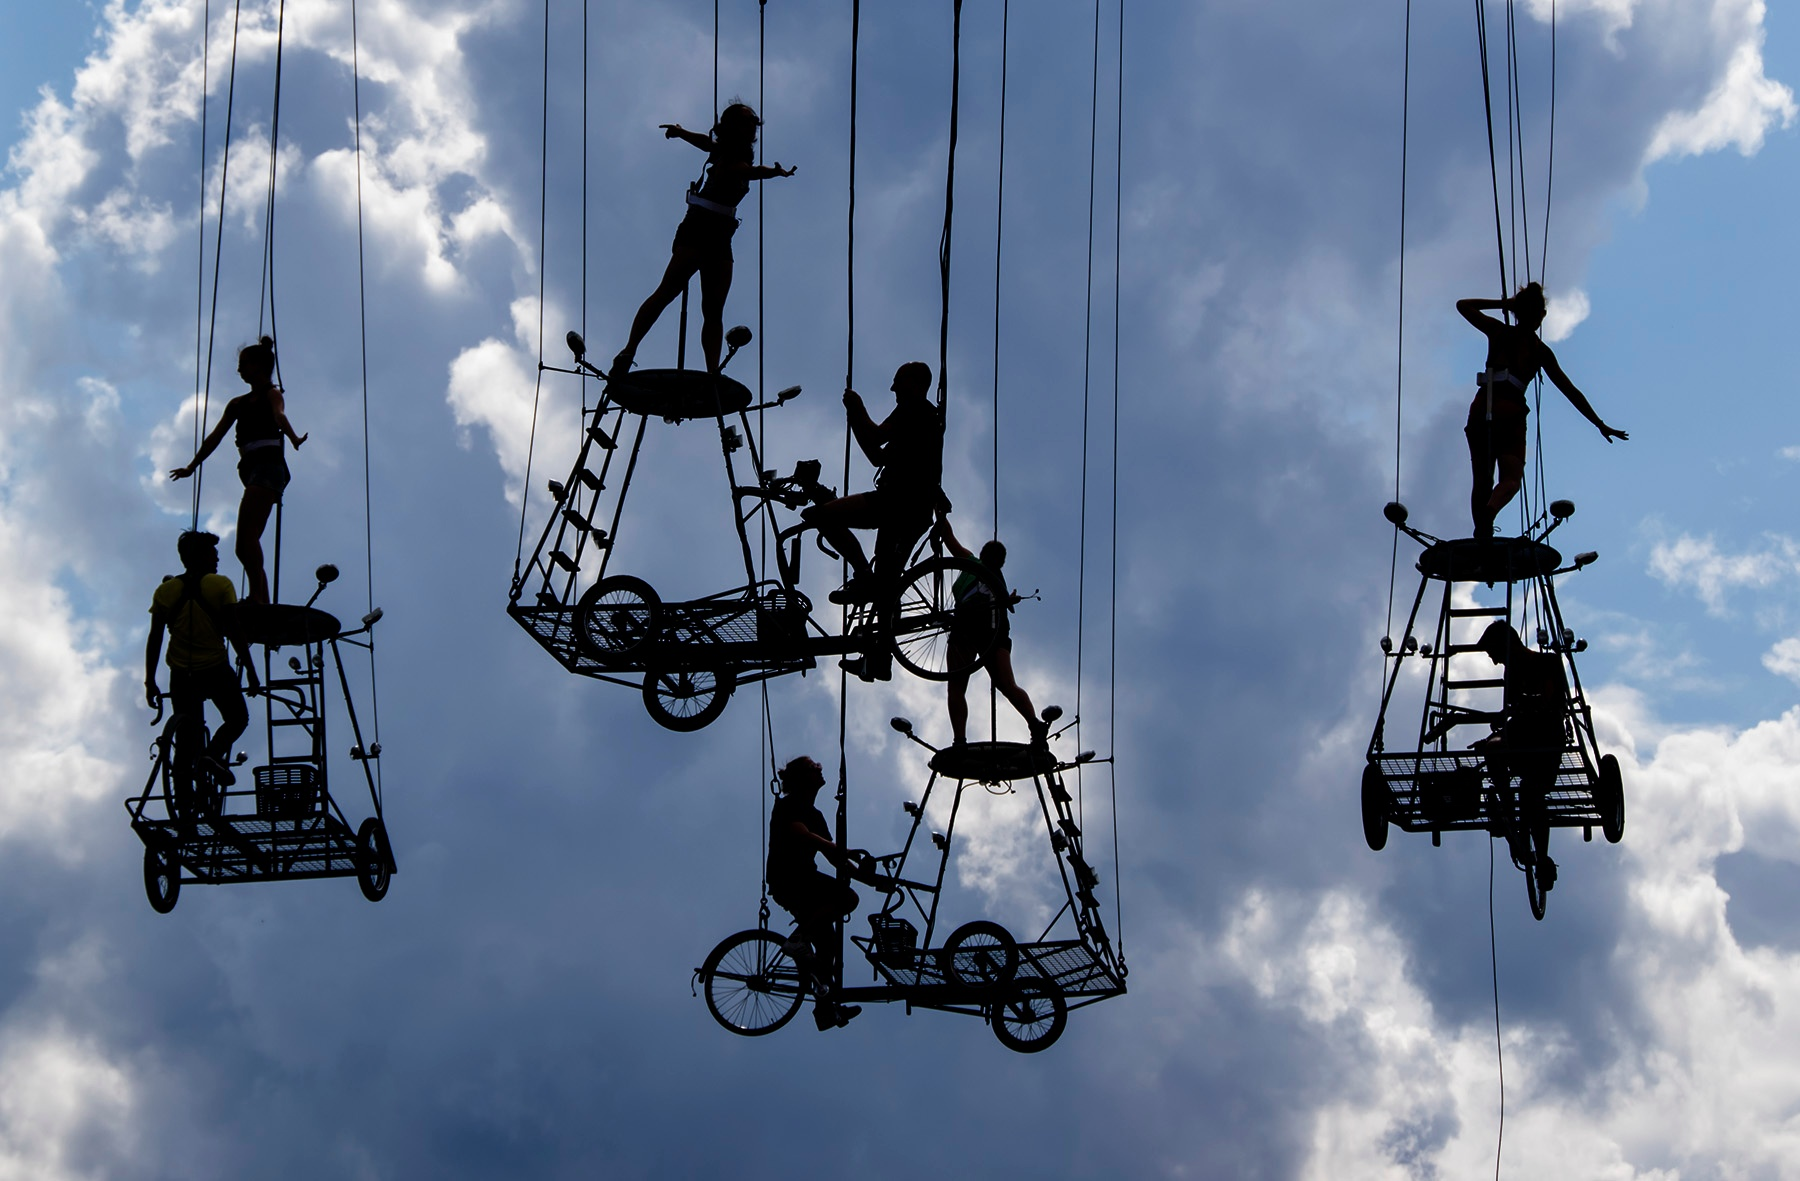 Flying Bicycles  by Ian M